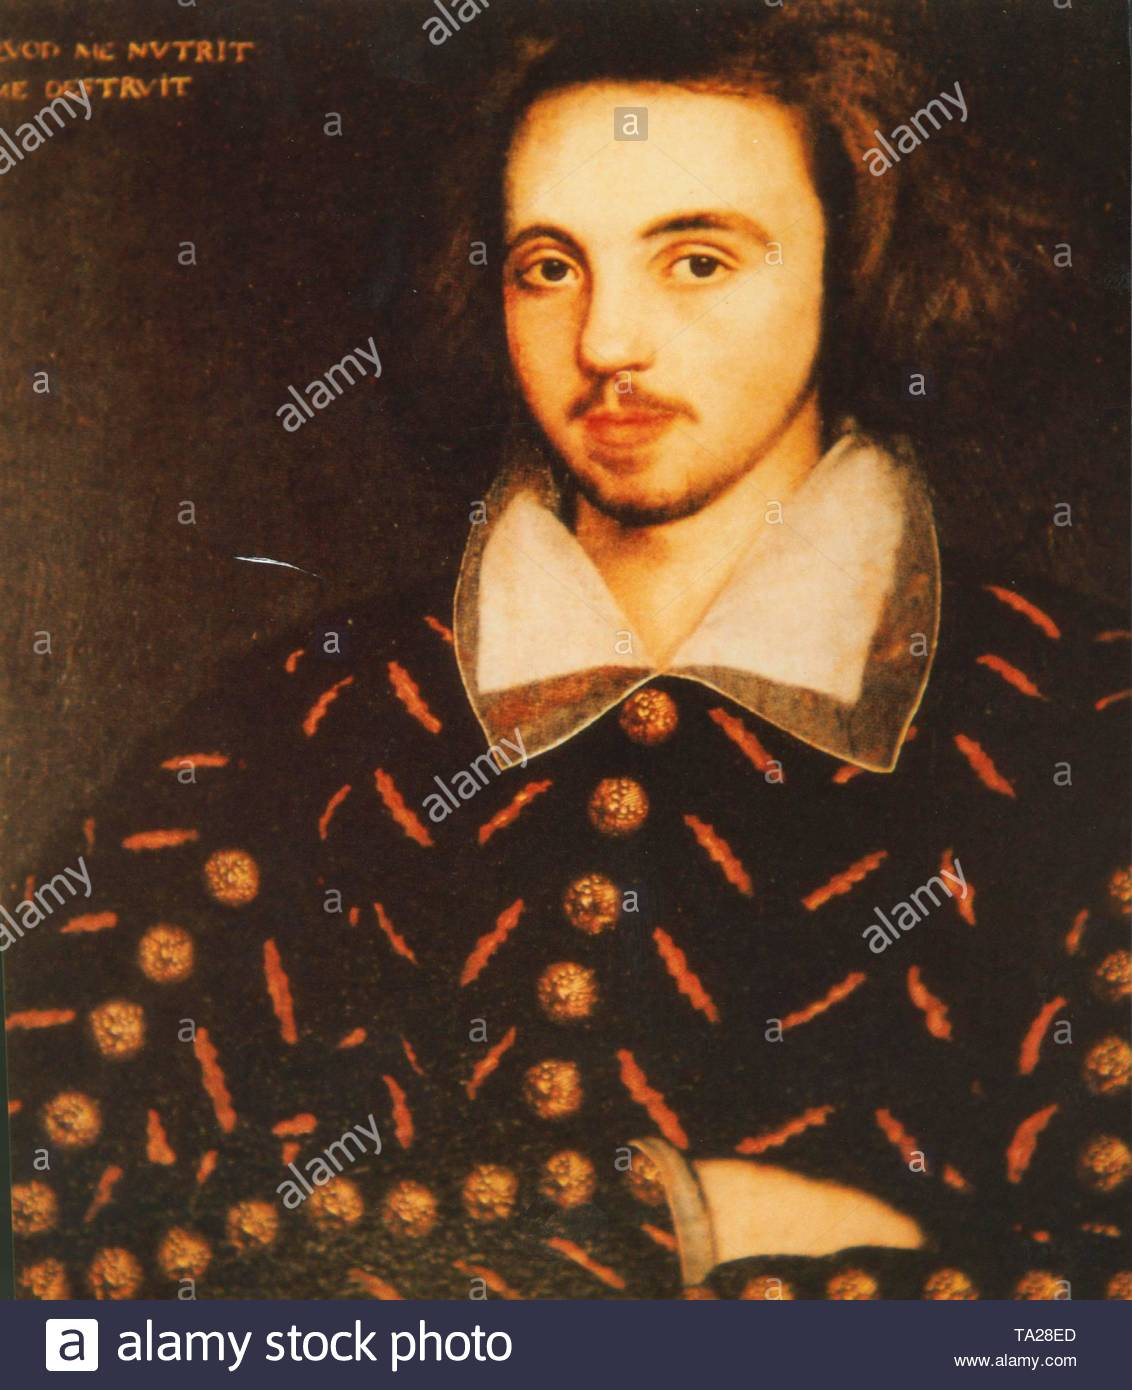 Christopher Marlowe, English stage poet, writer and playwright. He was born in Canterbury on 6.2. 1564, died in Deptford (London today) 30.5. In 1593, he wrote blank verse tragedies which treat the fate of titanic characters in solemn language: Tamburlaine the Great (first performed in 1587), Doctor Faustus (world premiere in 1588 or 1592, only preserved in fragments), The Jew of Malta (1590), Edward II (c. 1592). - Stock Image